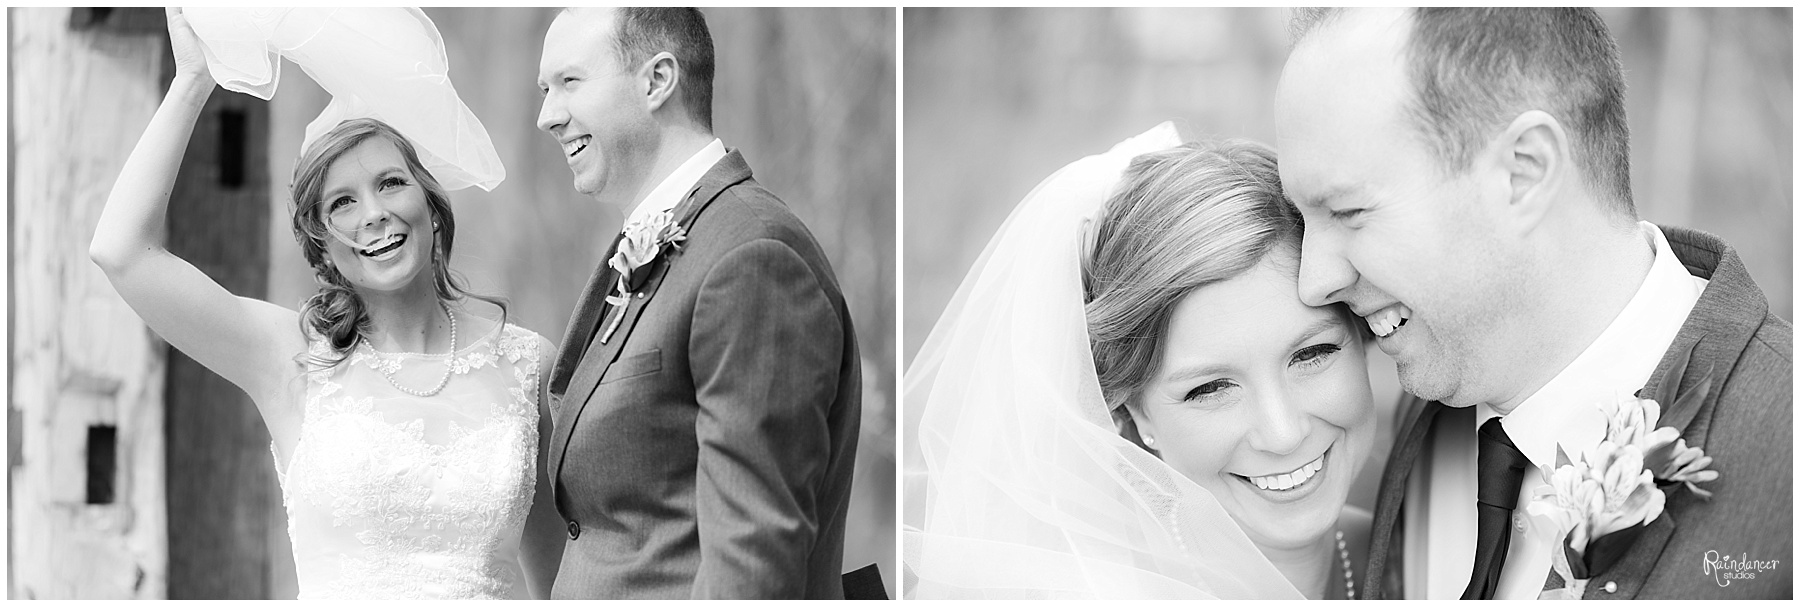 Bride and groom smiling by Raindancer Studios Indianapolis Wedding Photographer Jill Howell